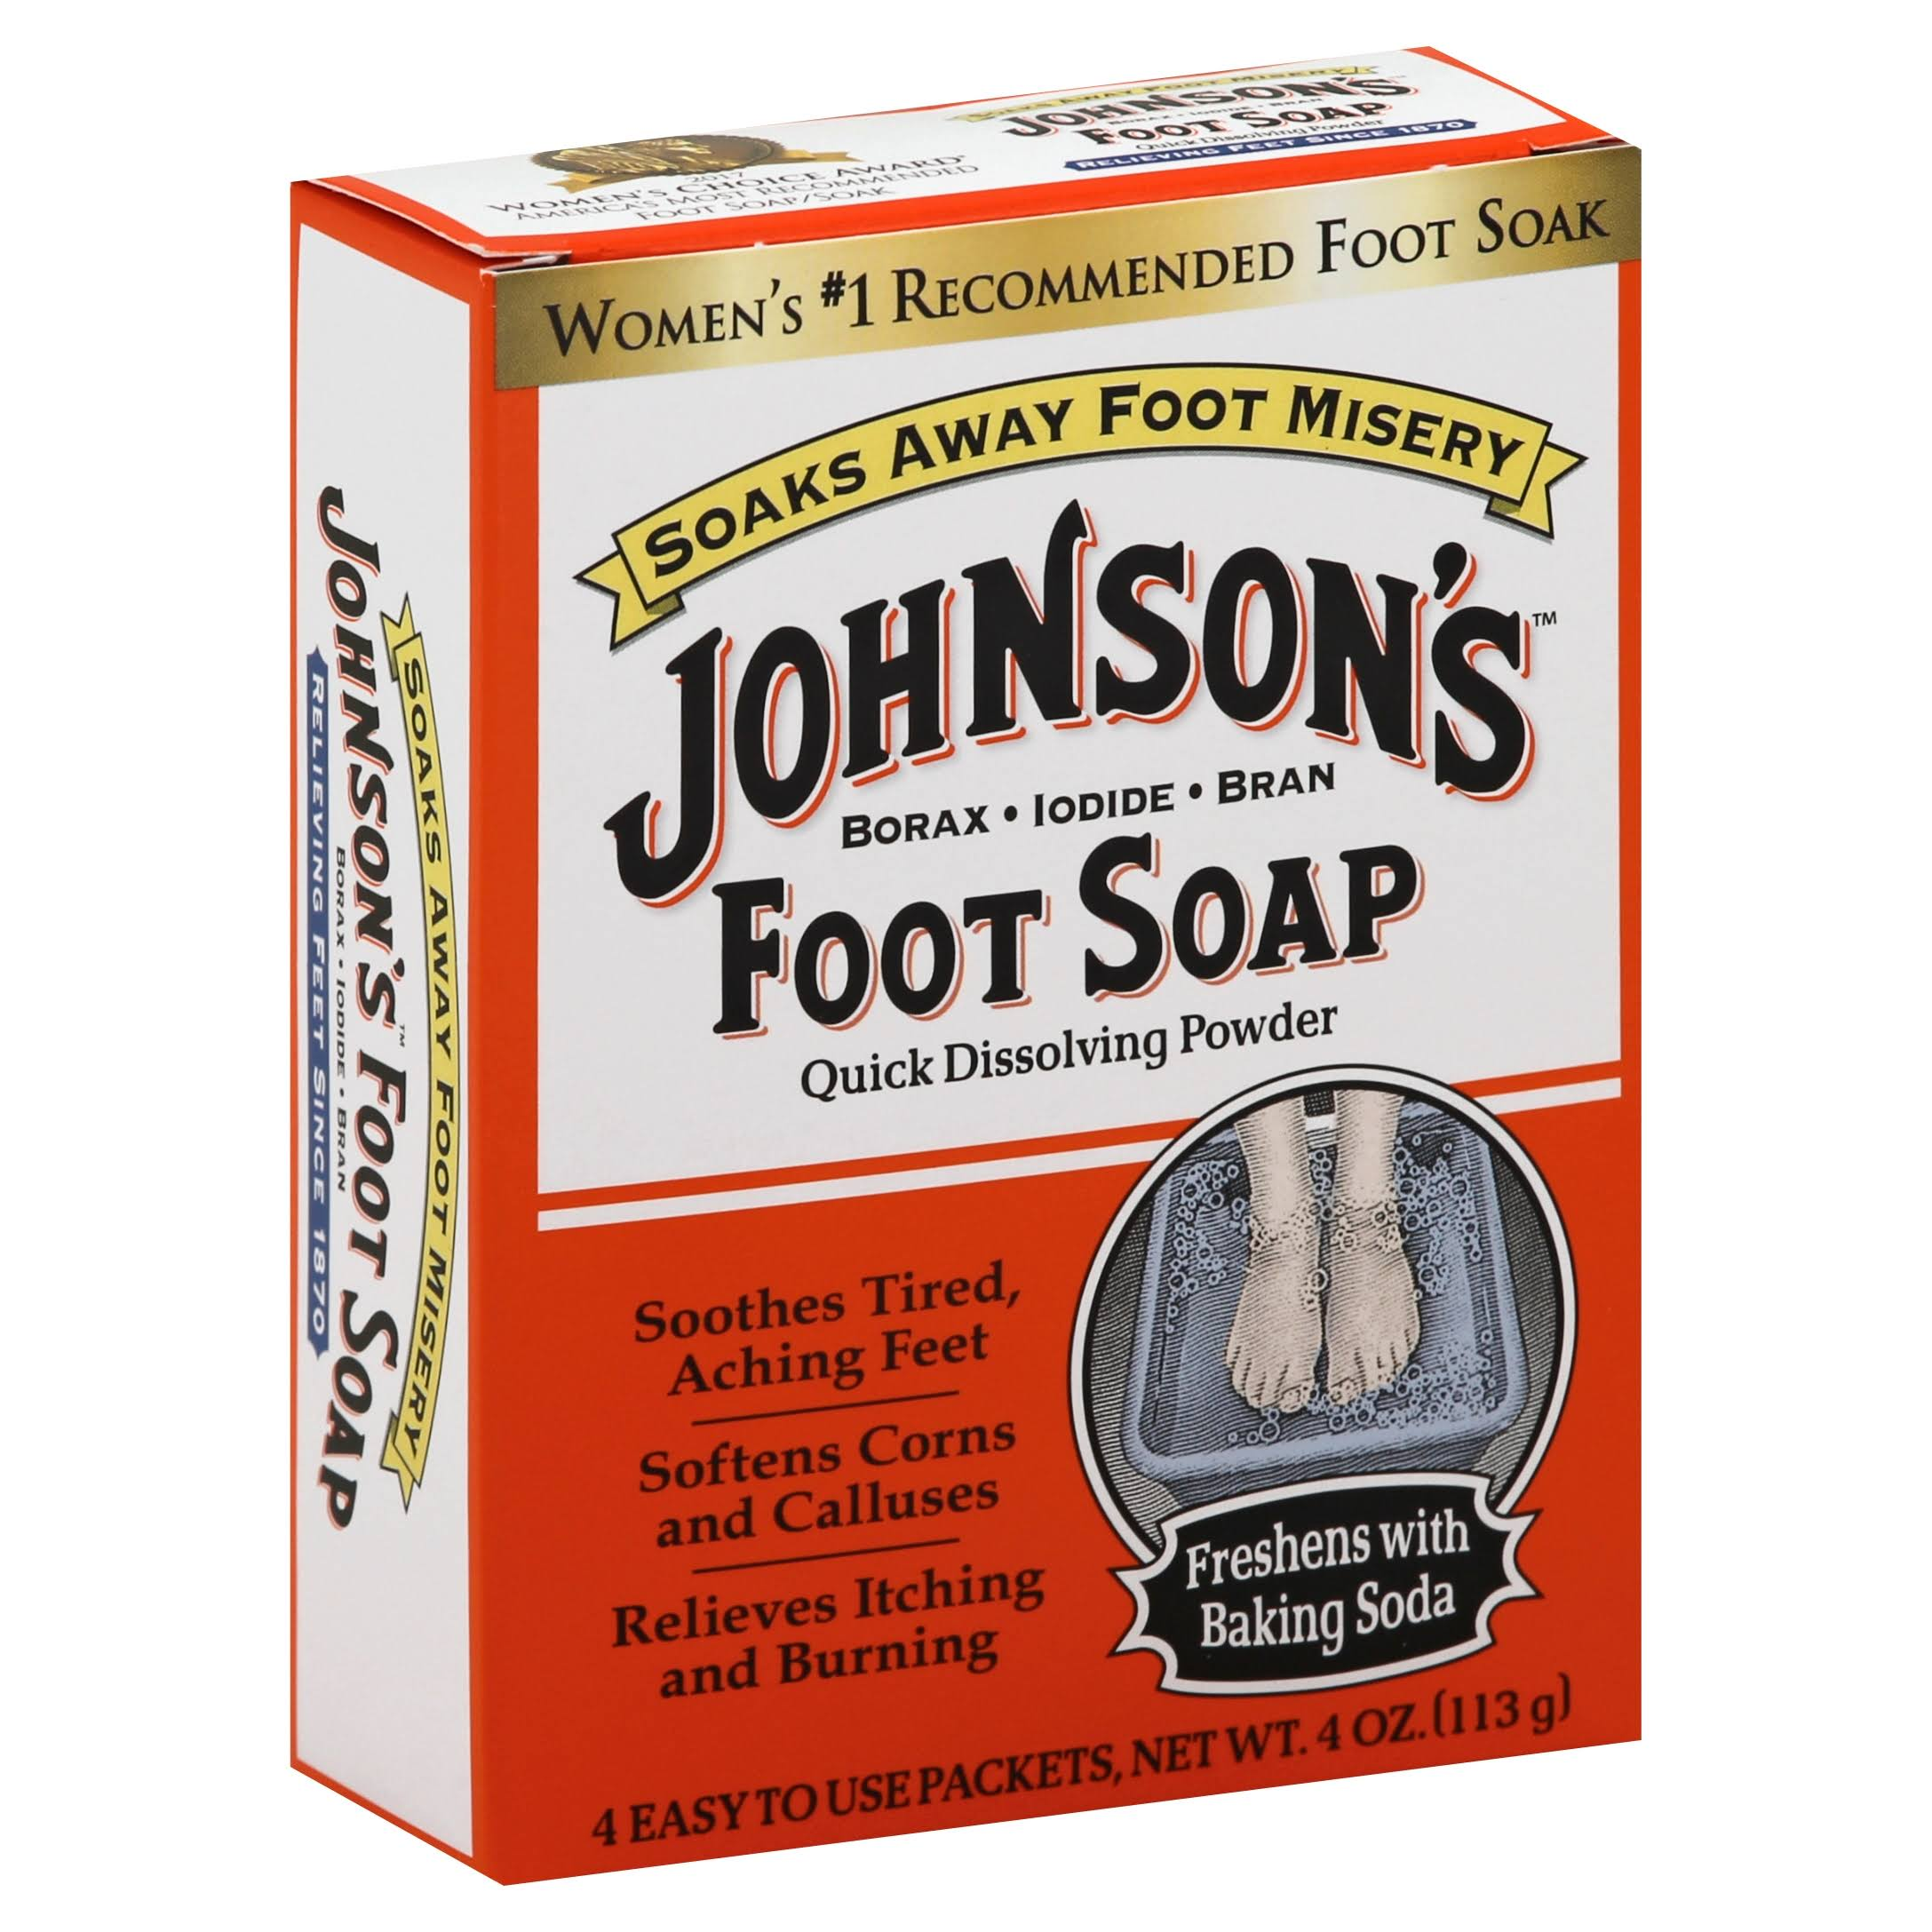 Johnson's Foot Soap Quick Dissolving Powder - 4ct, 4oz